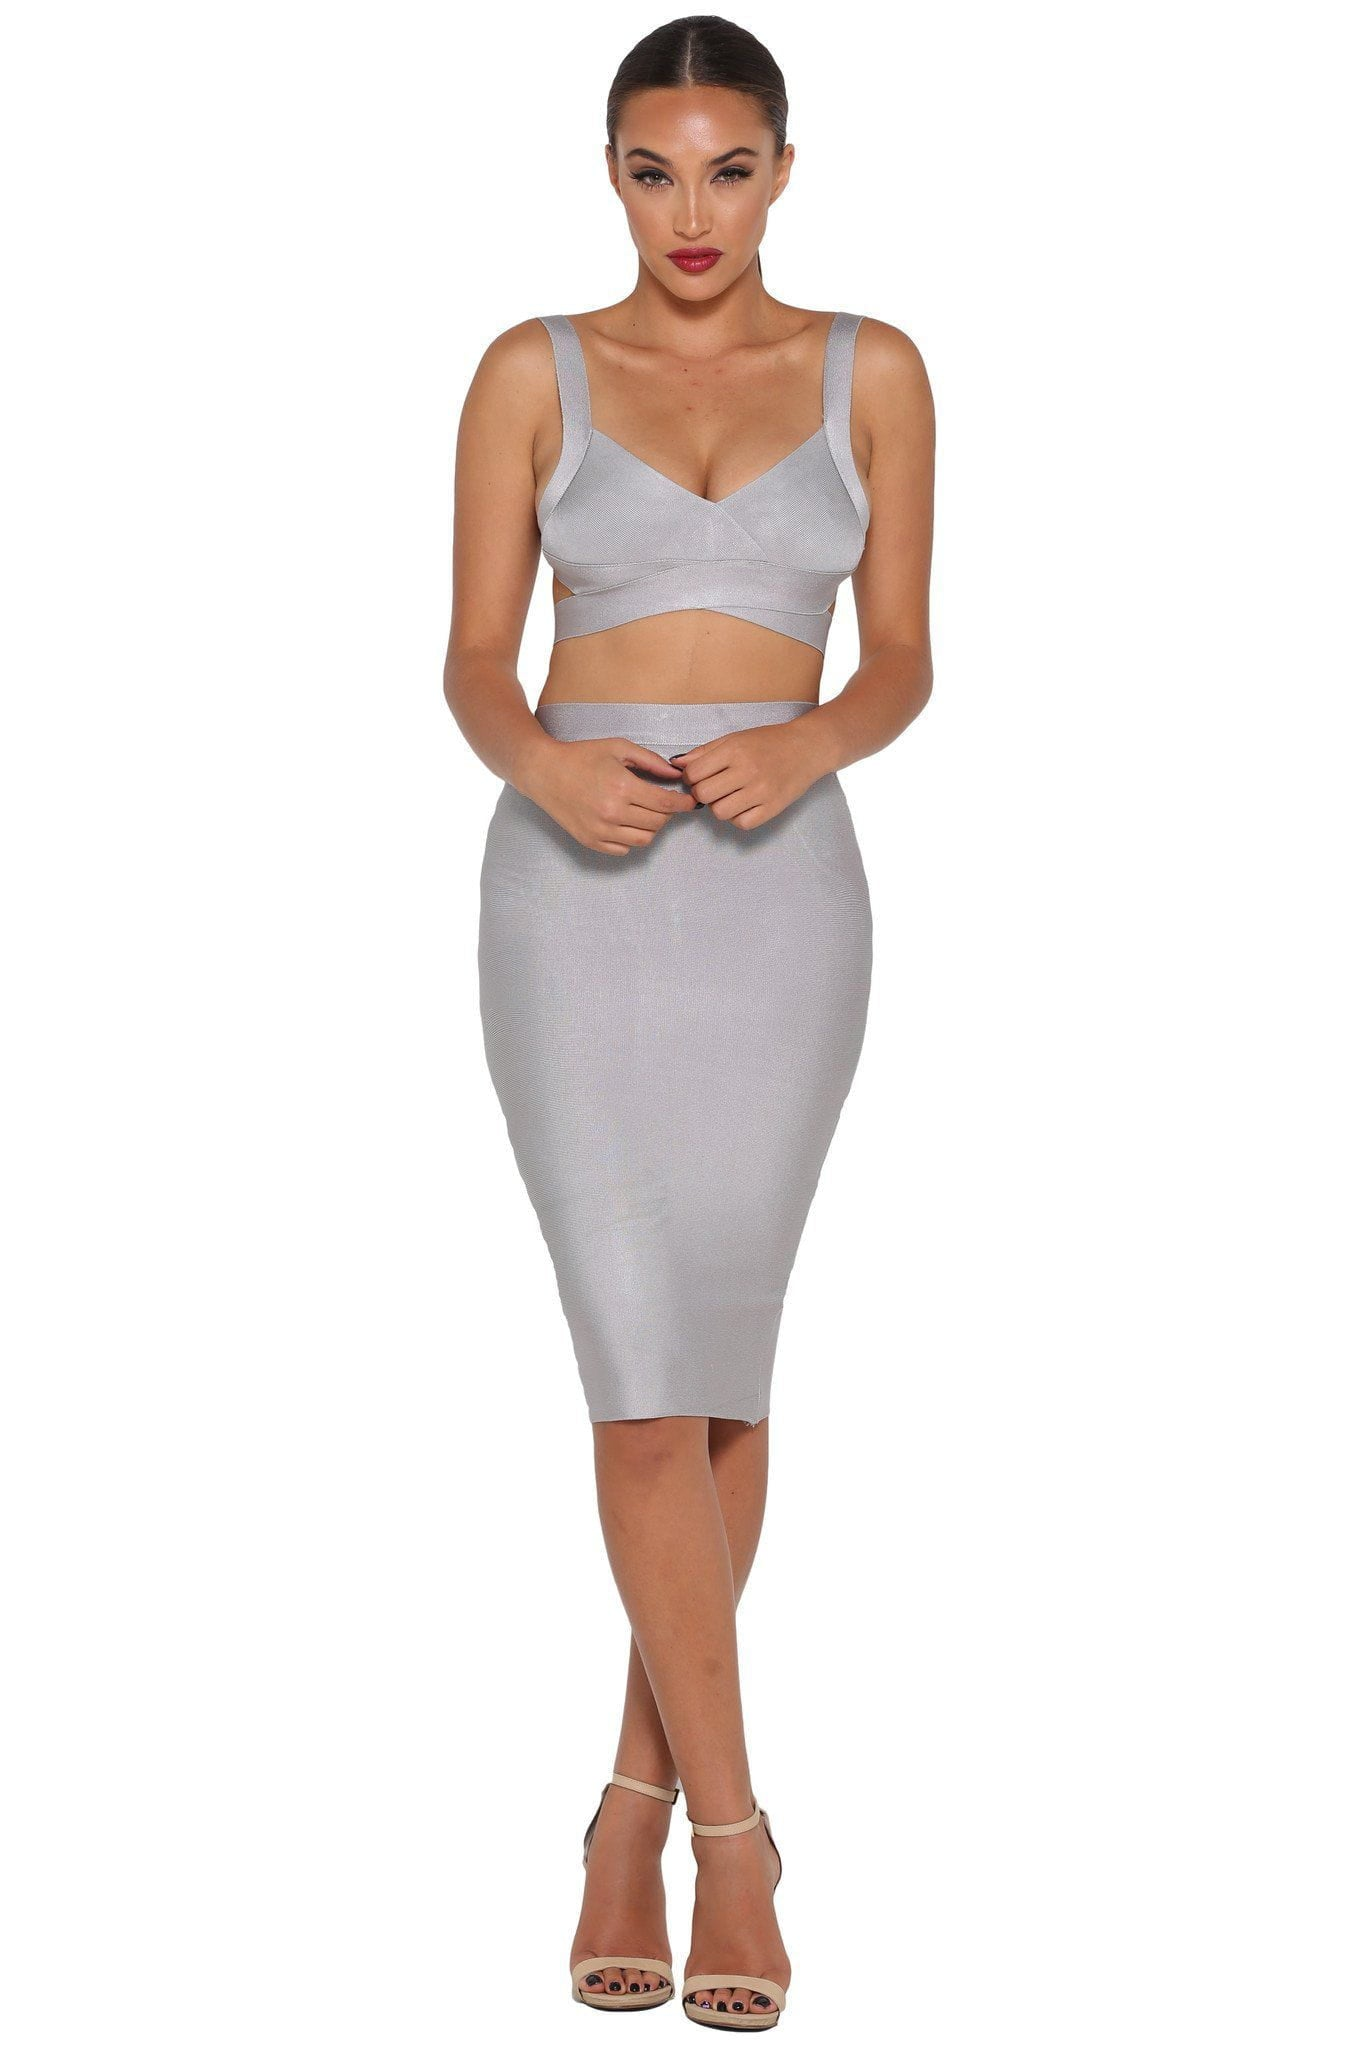 Women's Clothing Clearance Sale Online tagged